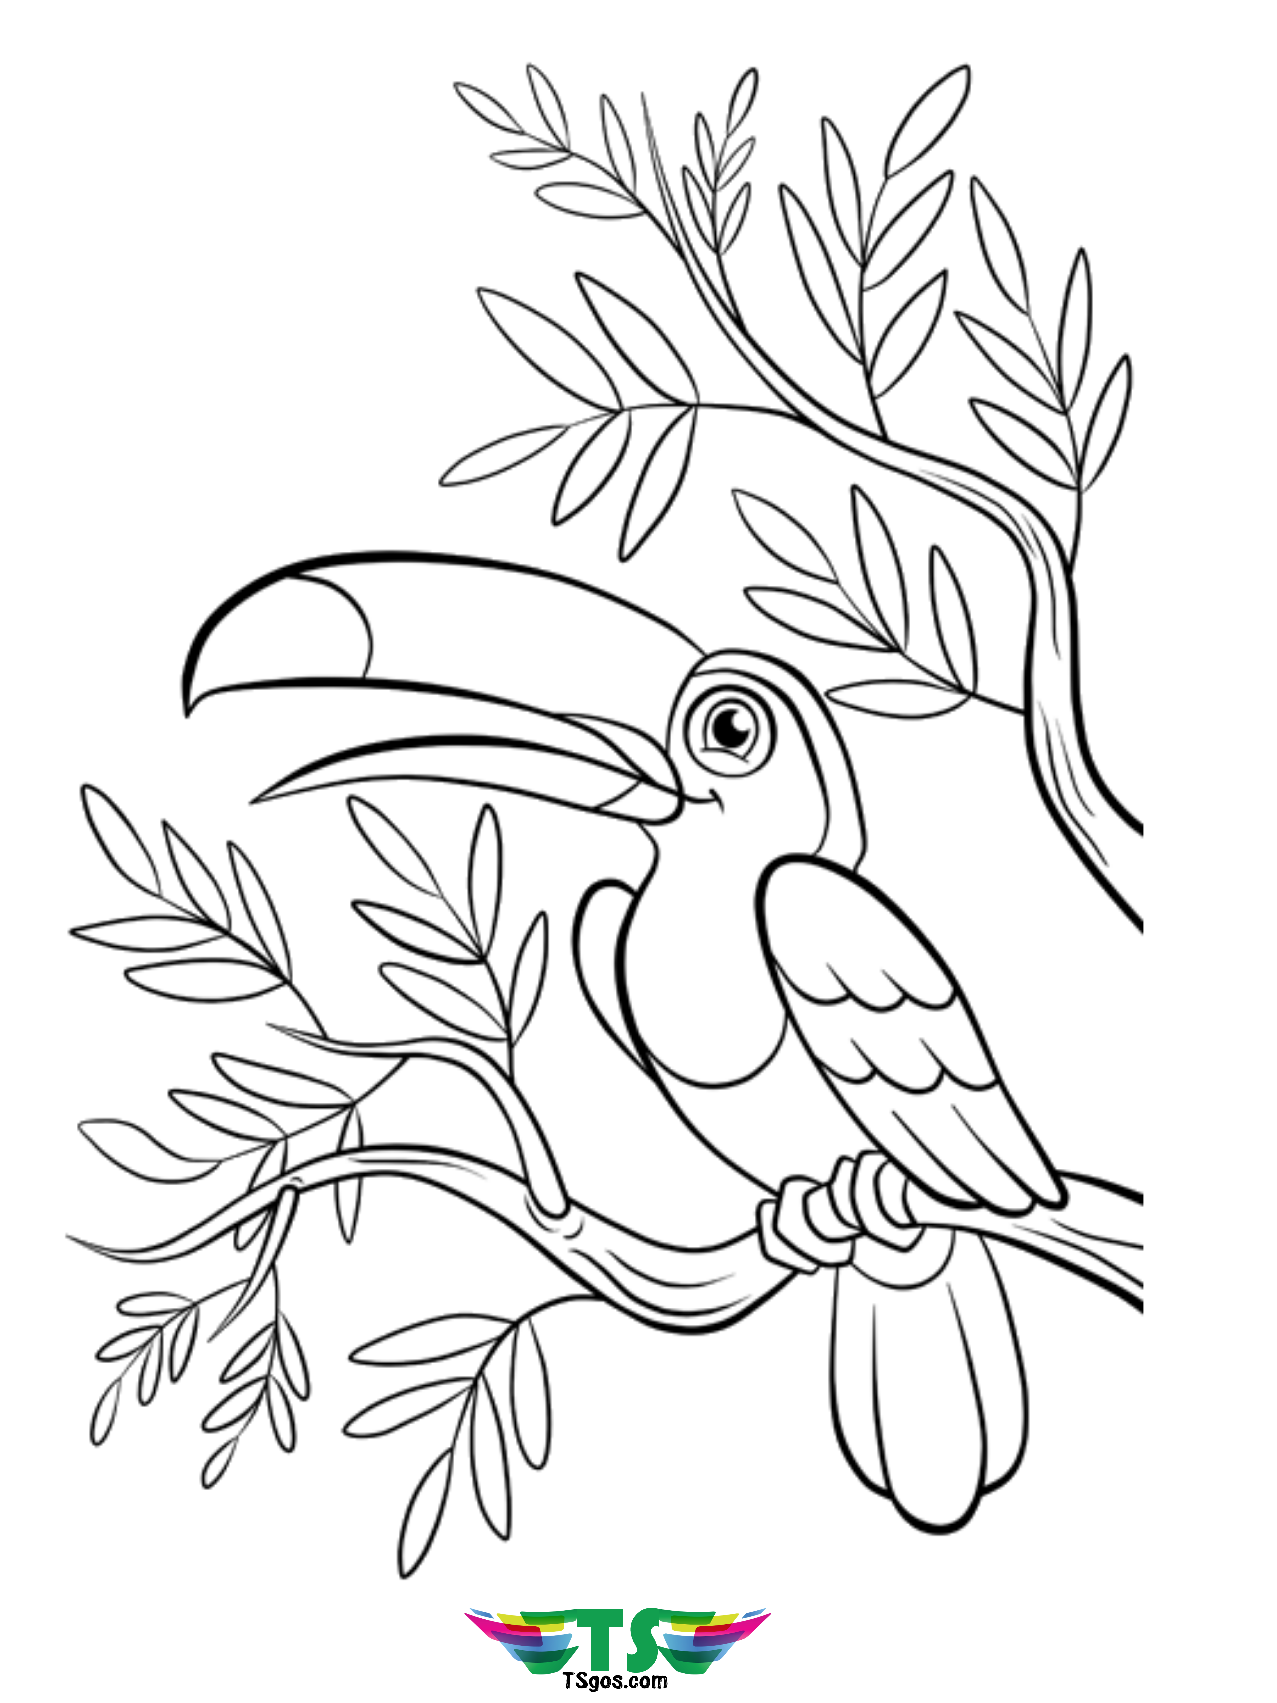 Beautiful bird coloring page free download. - TSgos.com